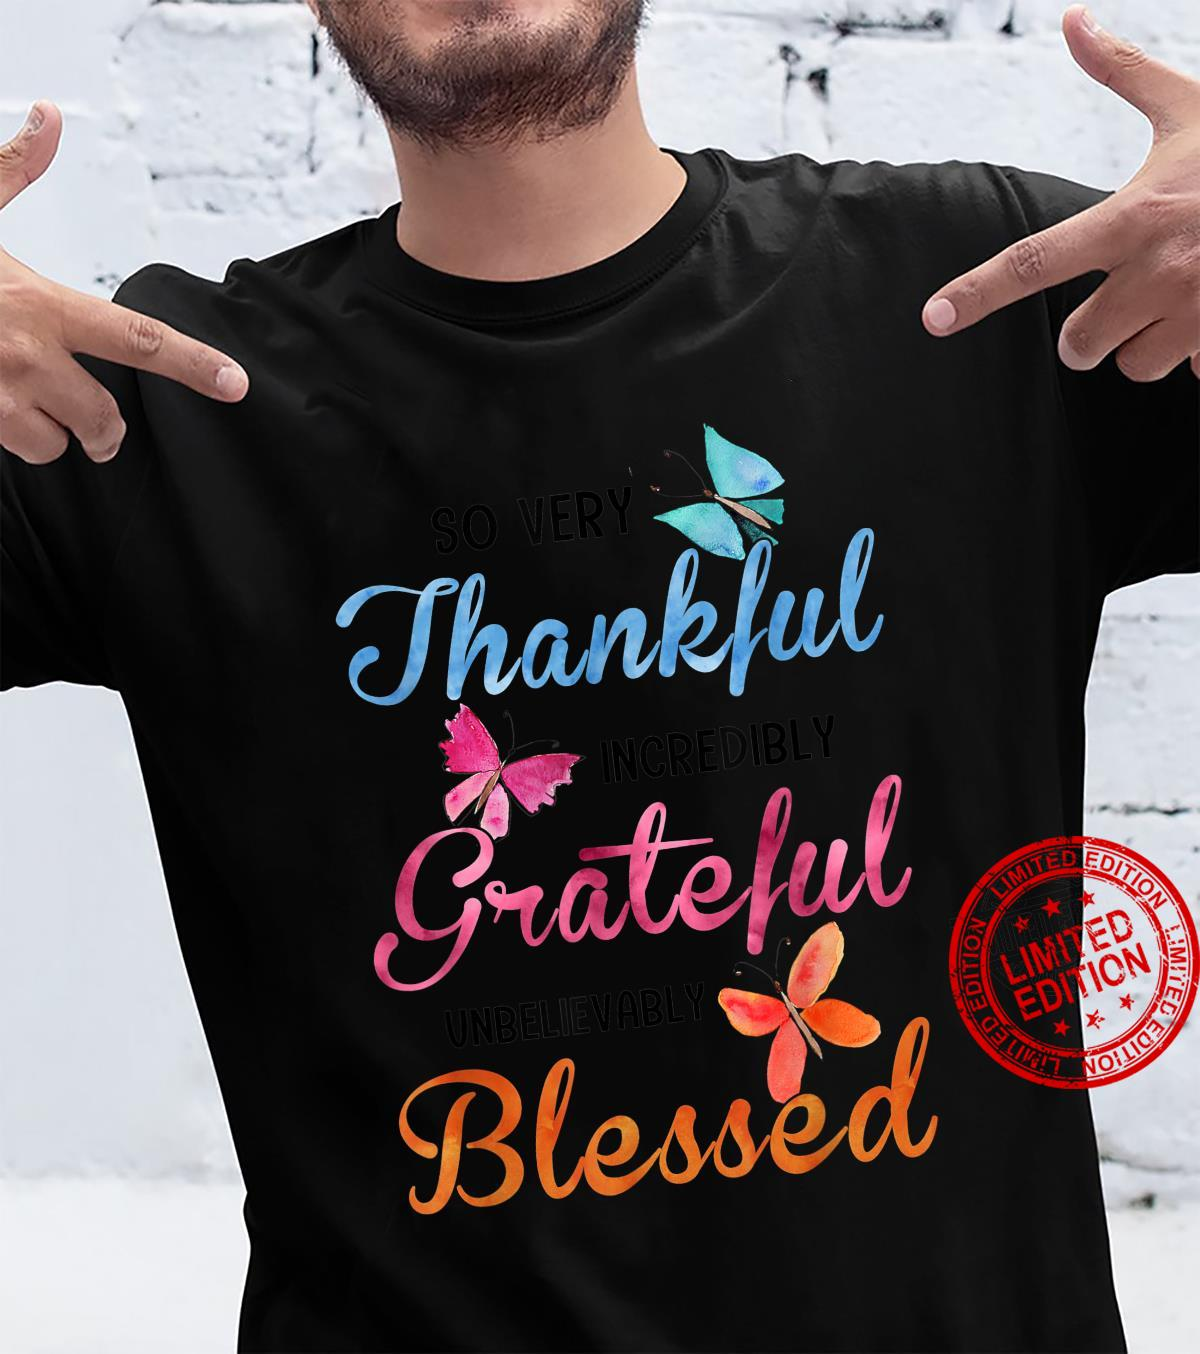 So Very Thankful Incredibly Grateful Unbelievably Blessed Shirt